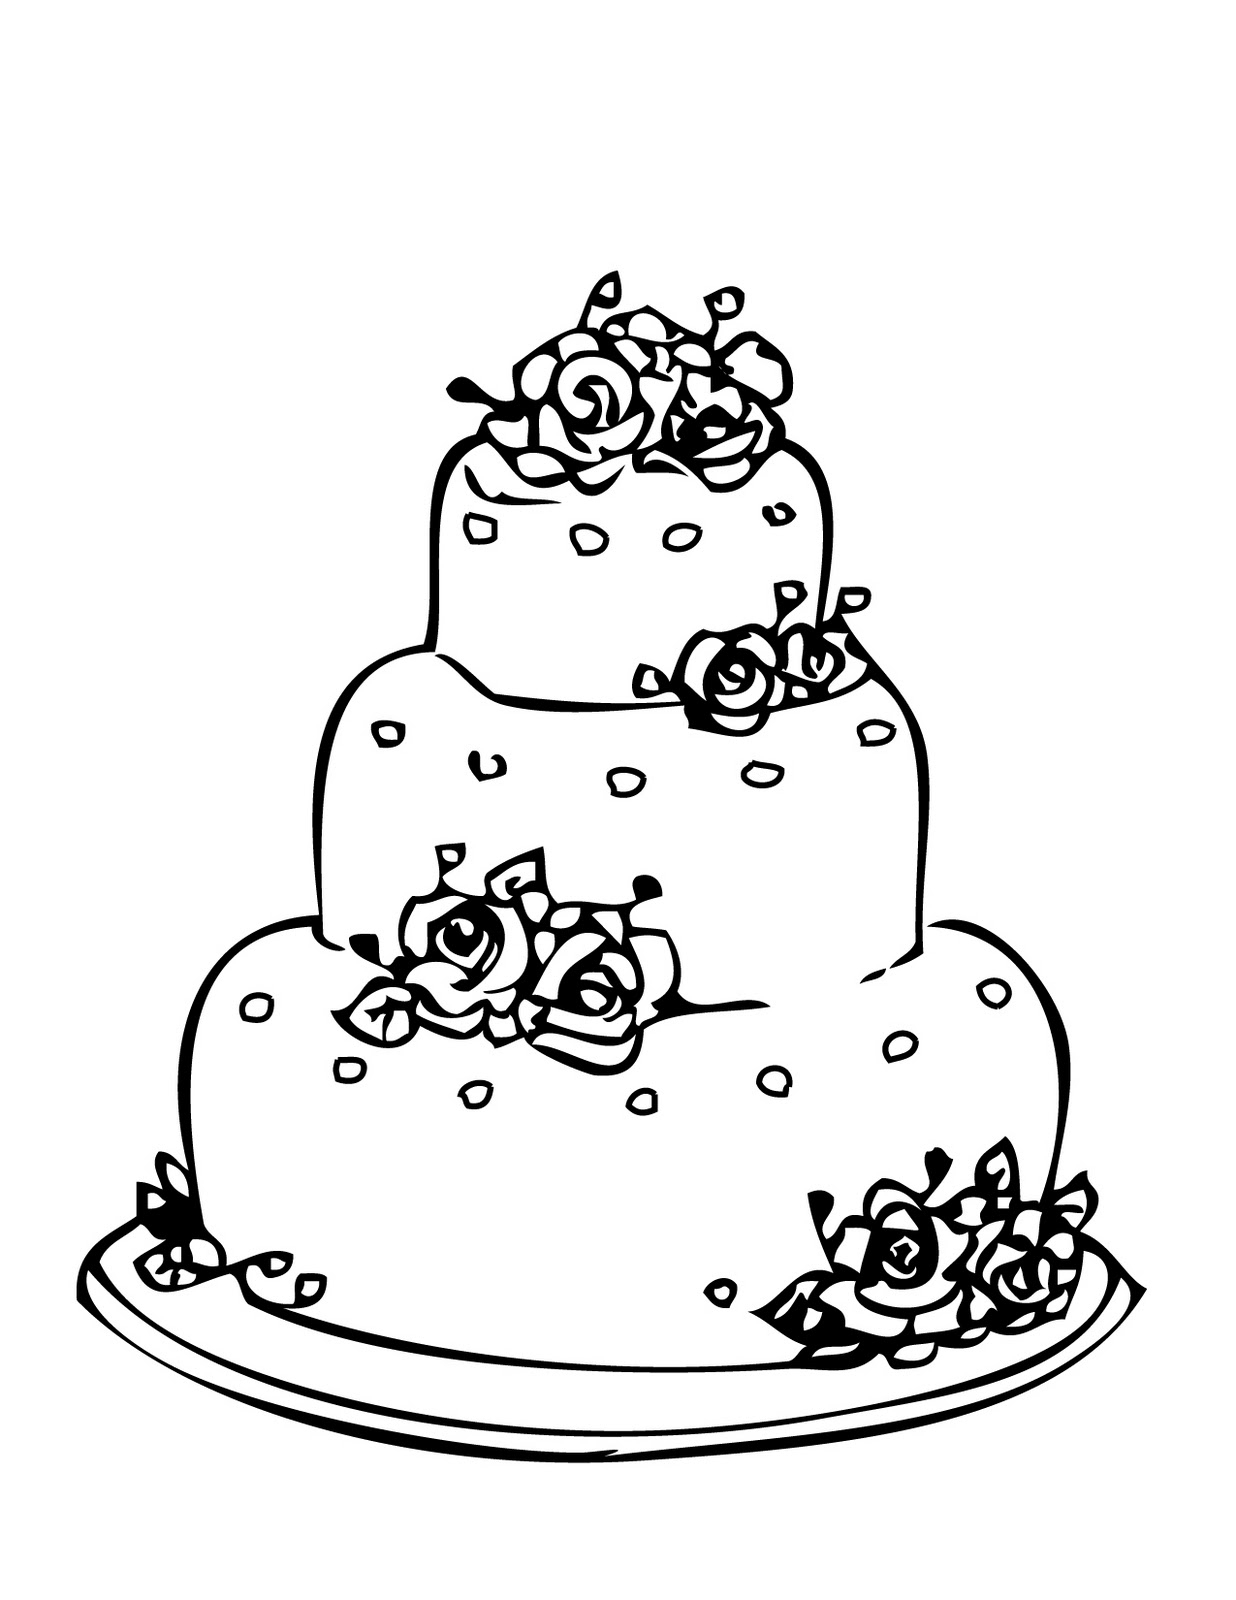 Birthday Cake Drawing At Getdrawings Com Free For